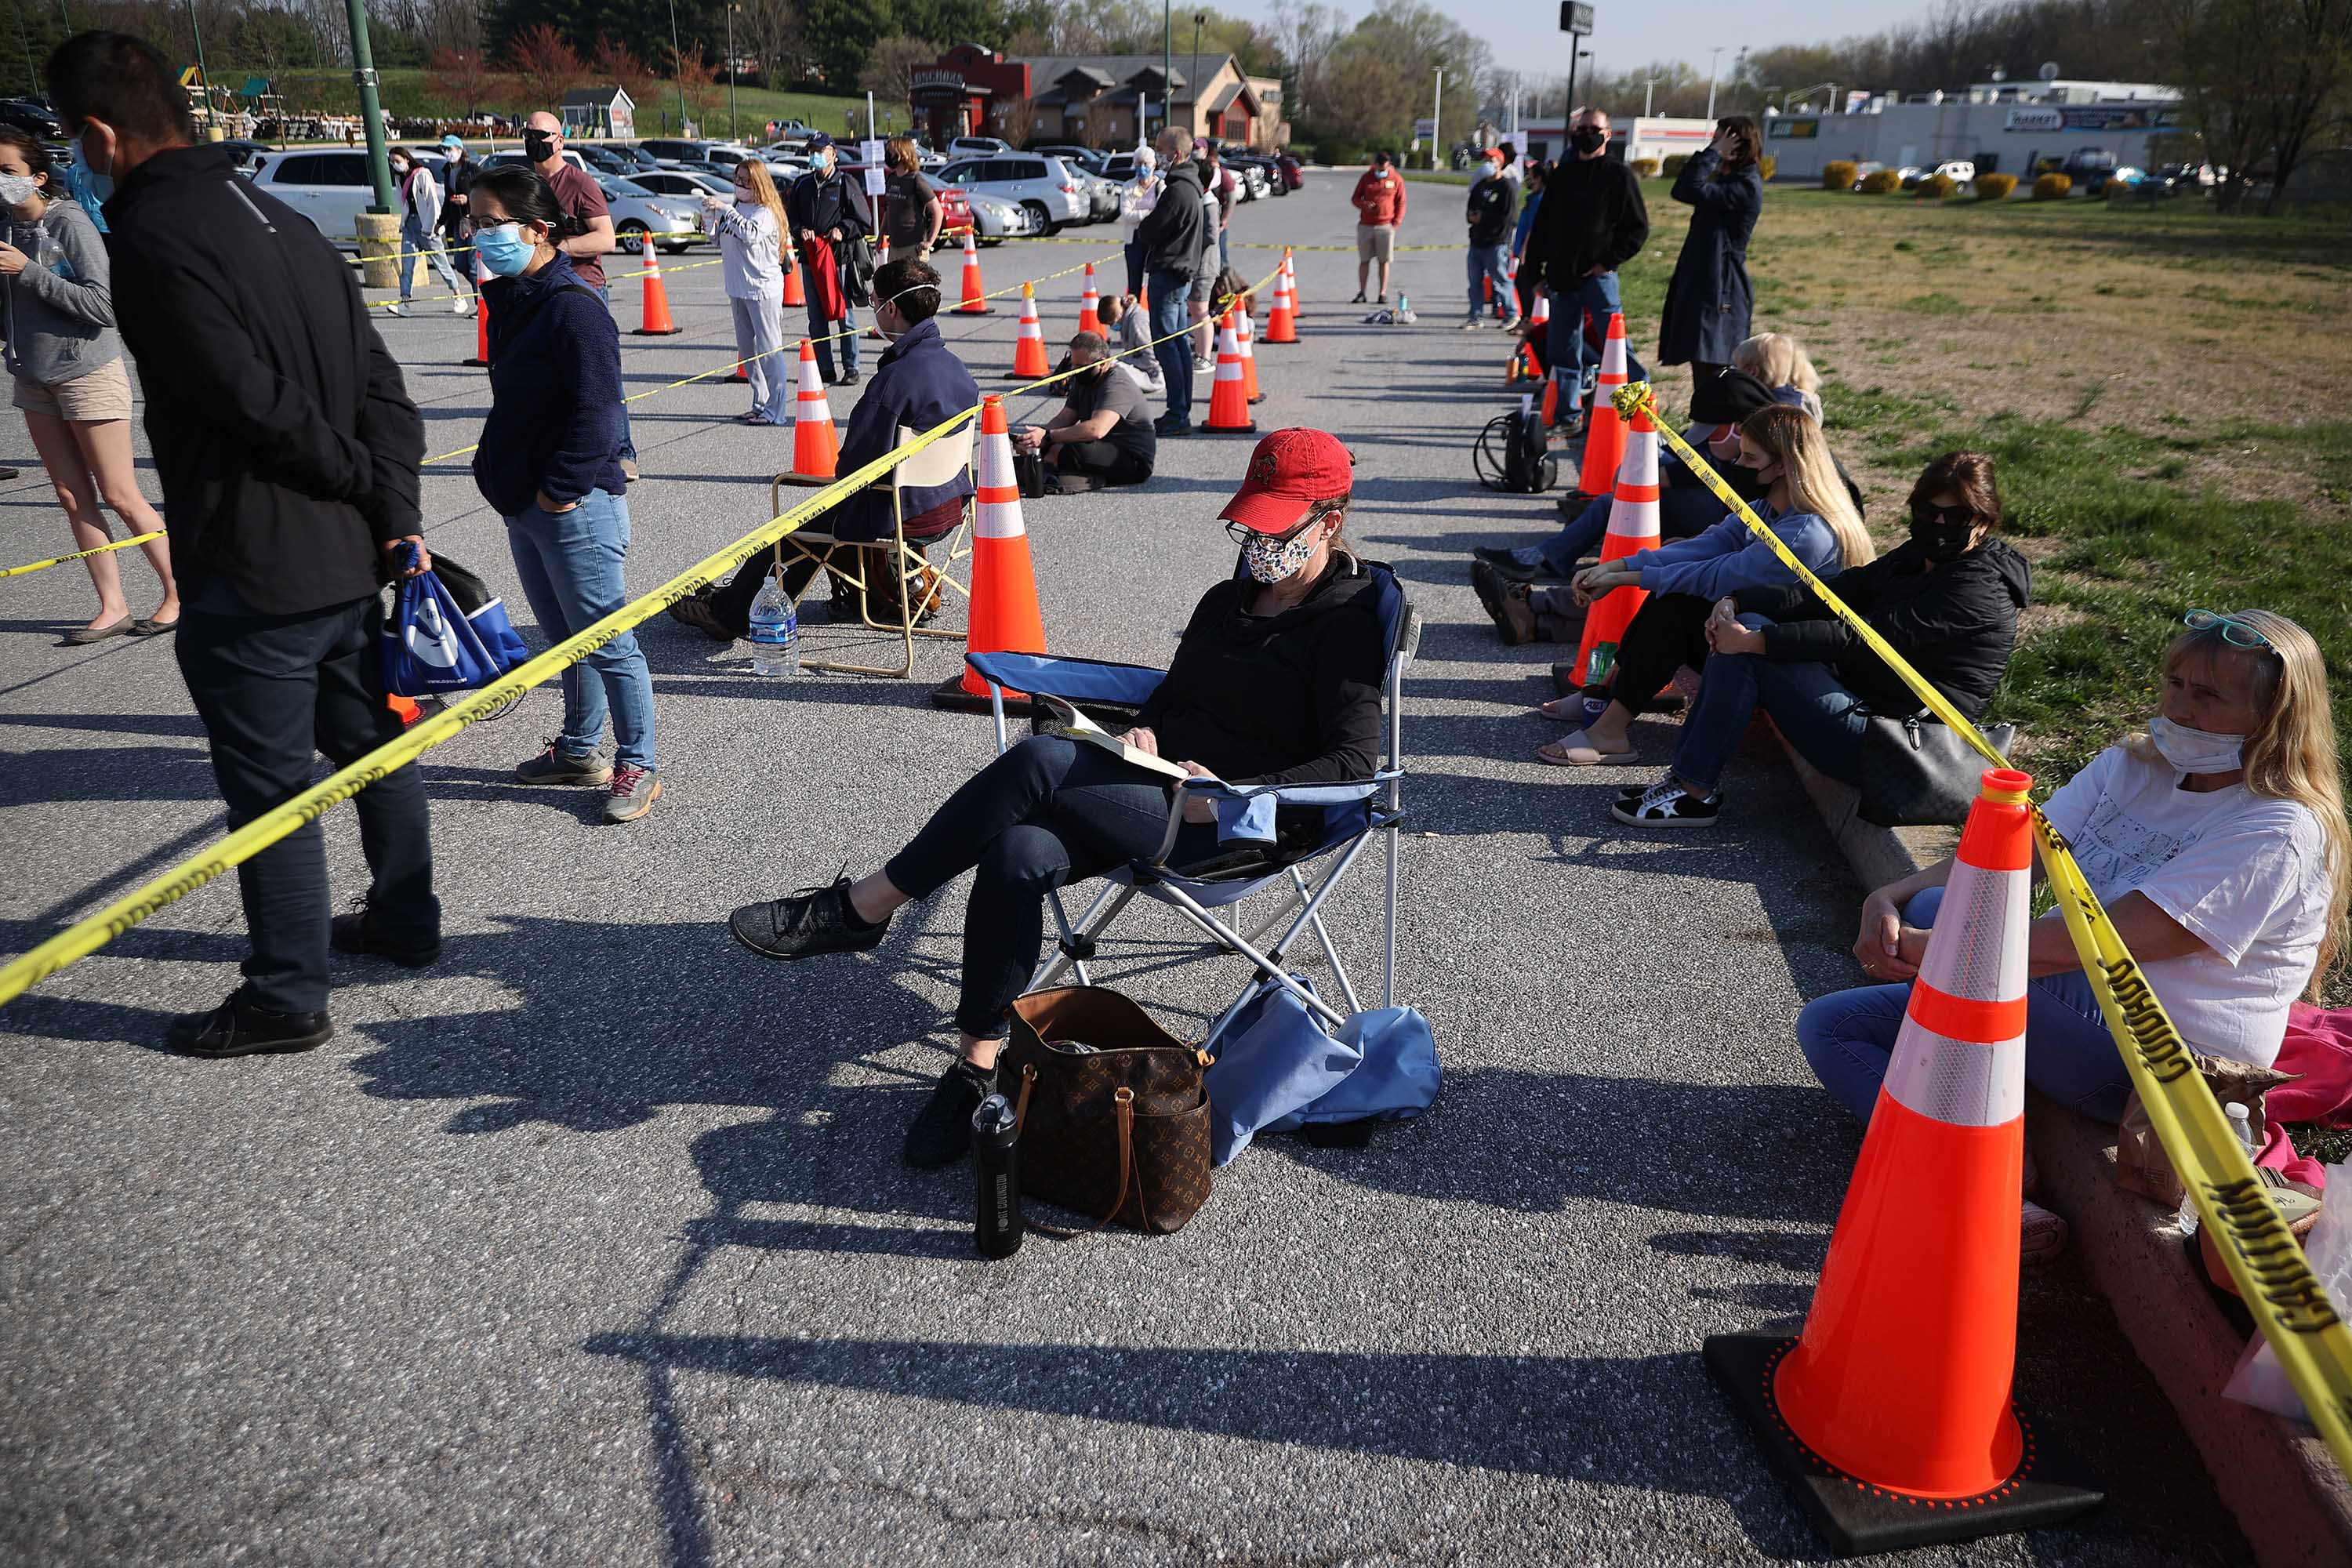 People wait outside a mass coronavirus vaccination site in Hagerstown, Maryland, on April 7.